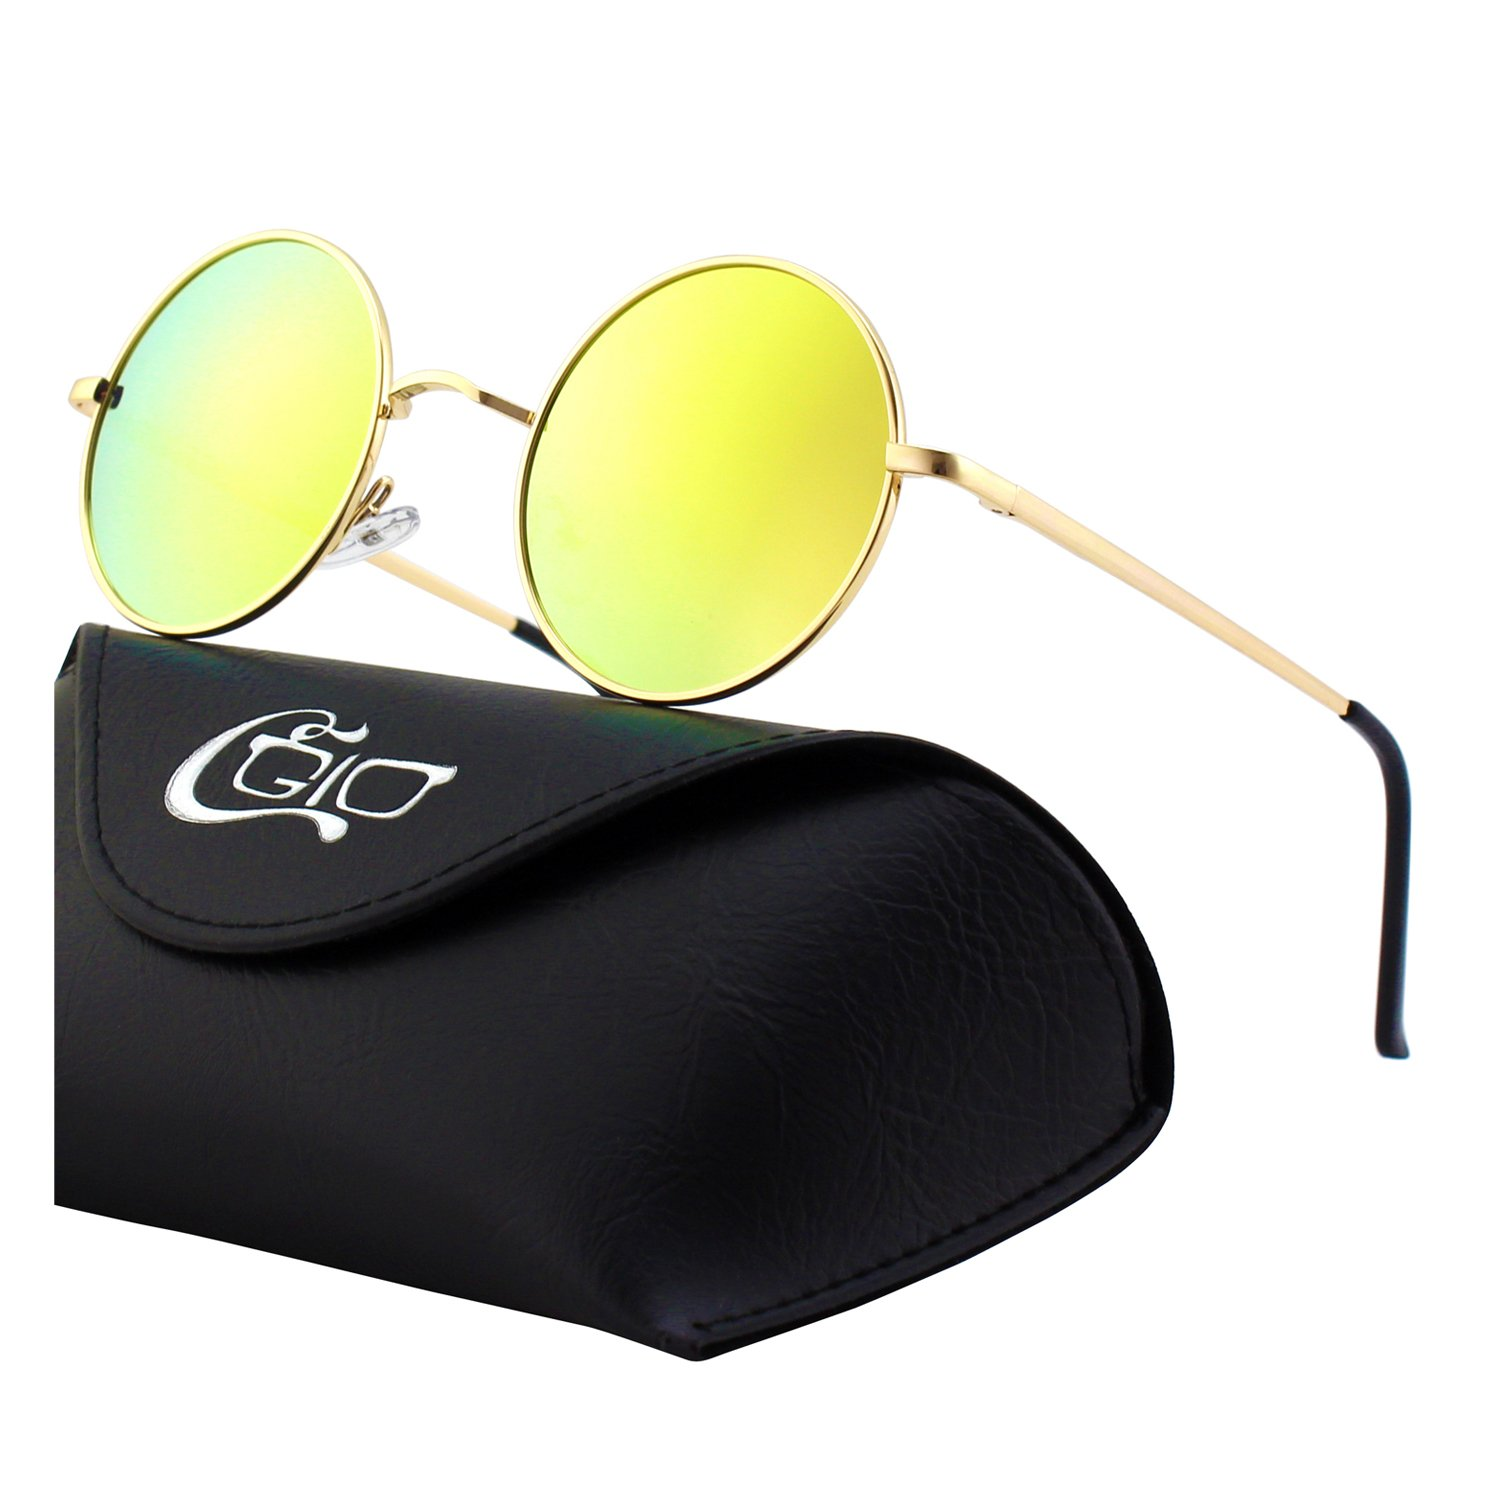 CGID E01 Retro Vintage John Lennon Inspired Round Metal Circle Polarized Sunglasses 17MJ801-1L